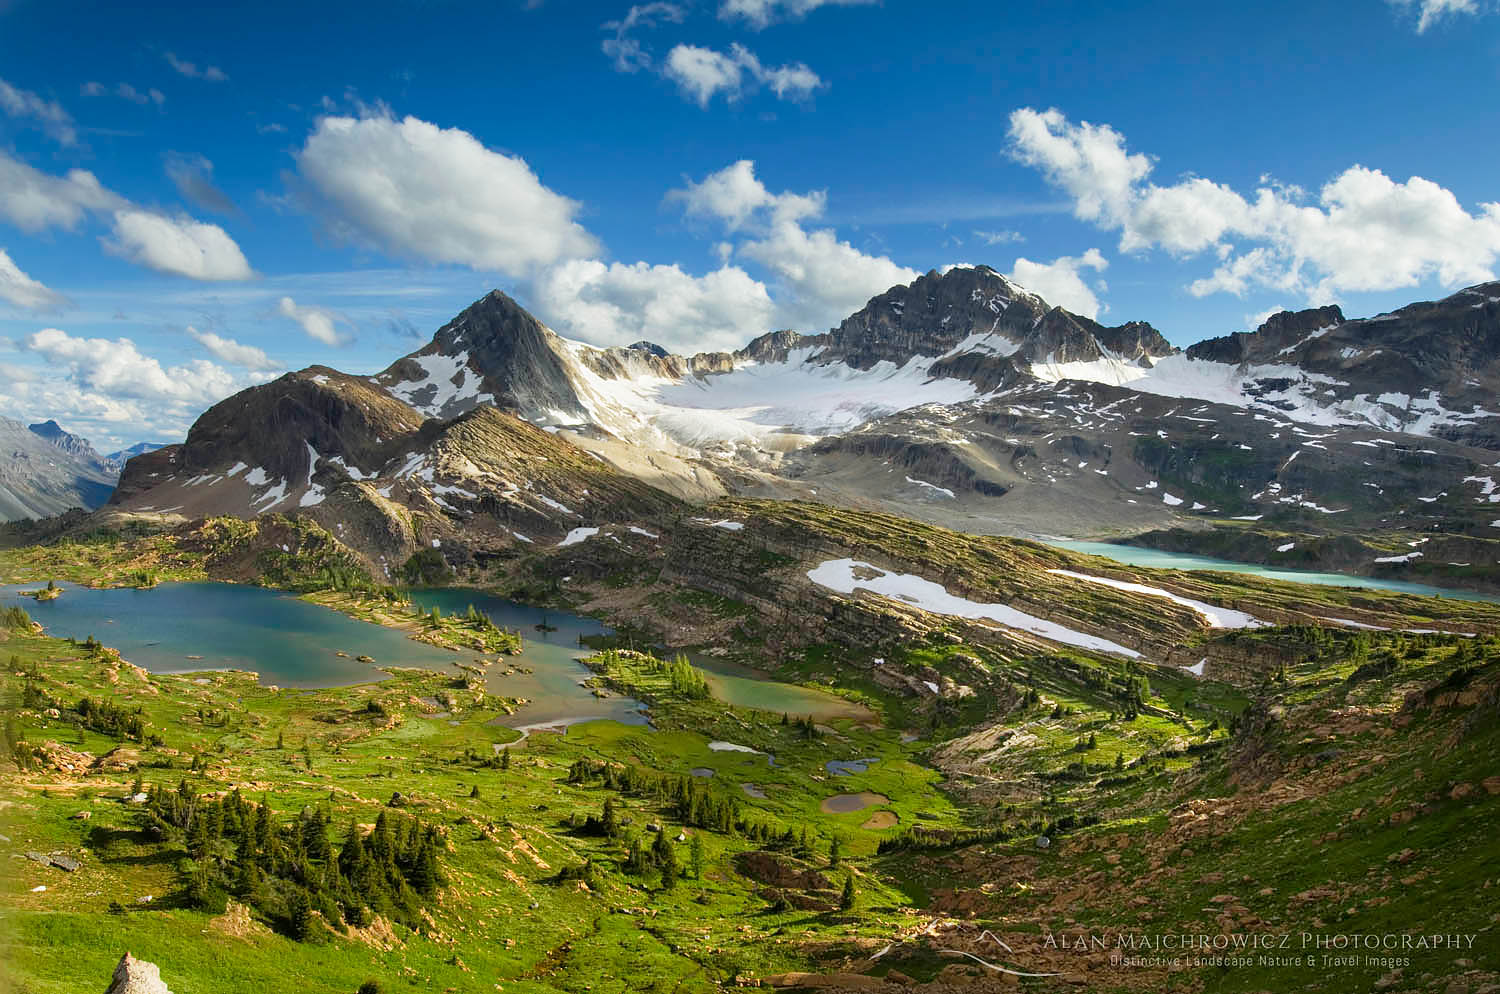 Limestone Lakes Height of the Rockies Summer Photography Tour 2019